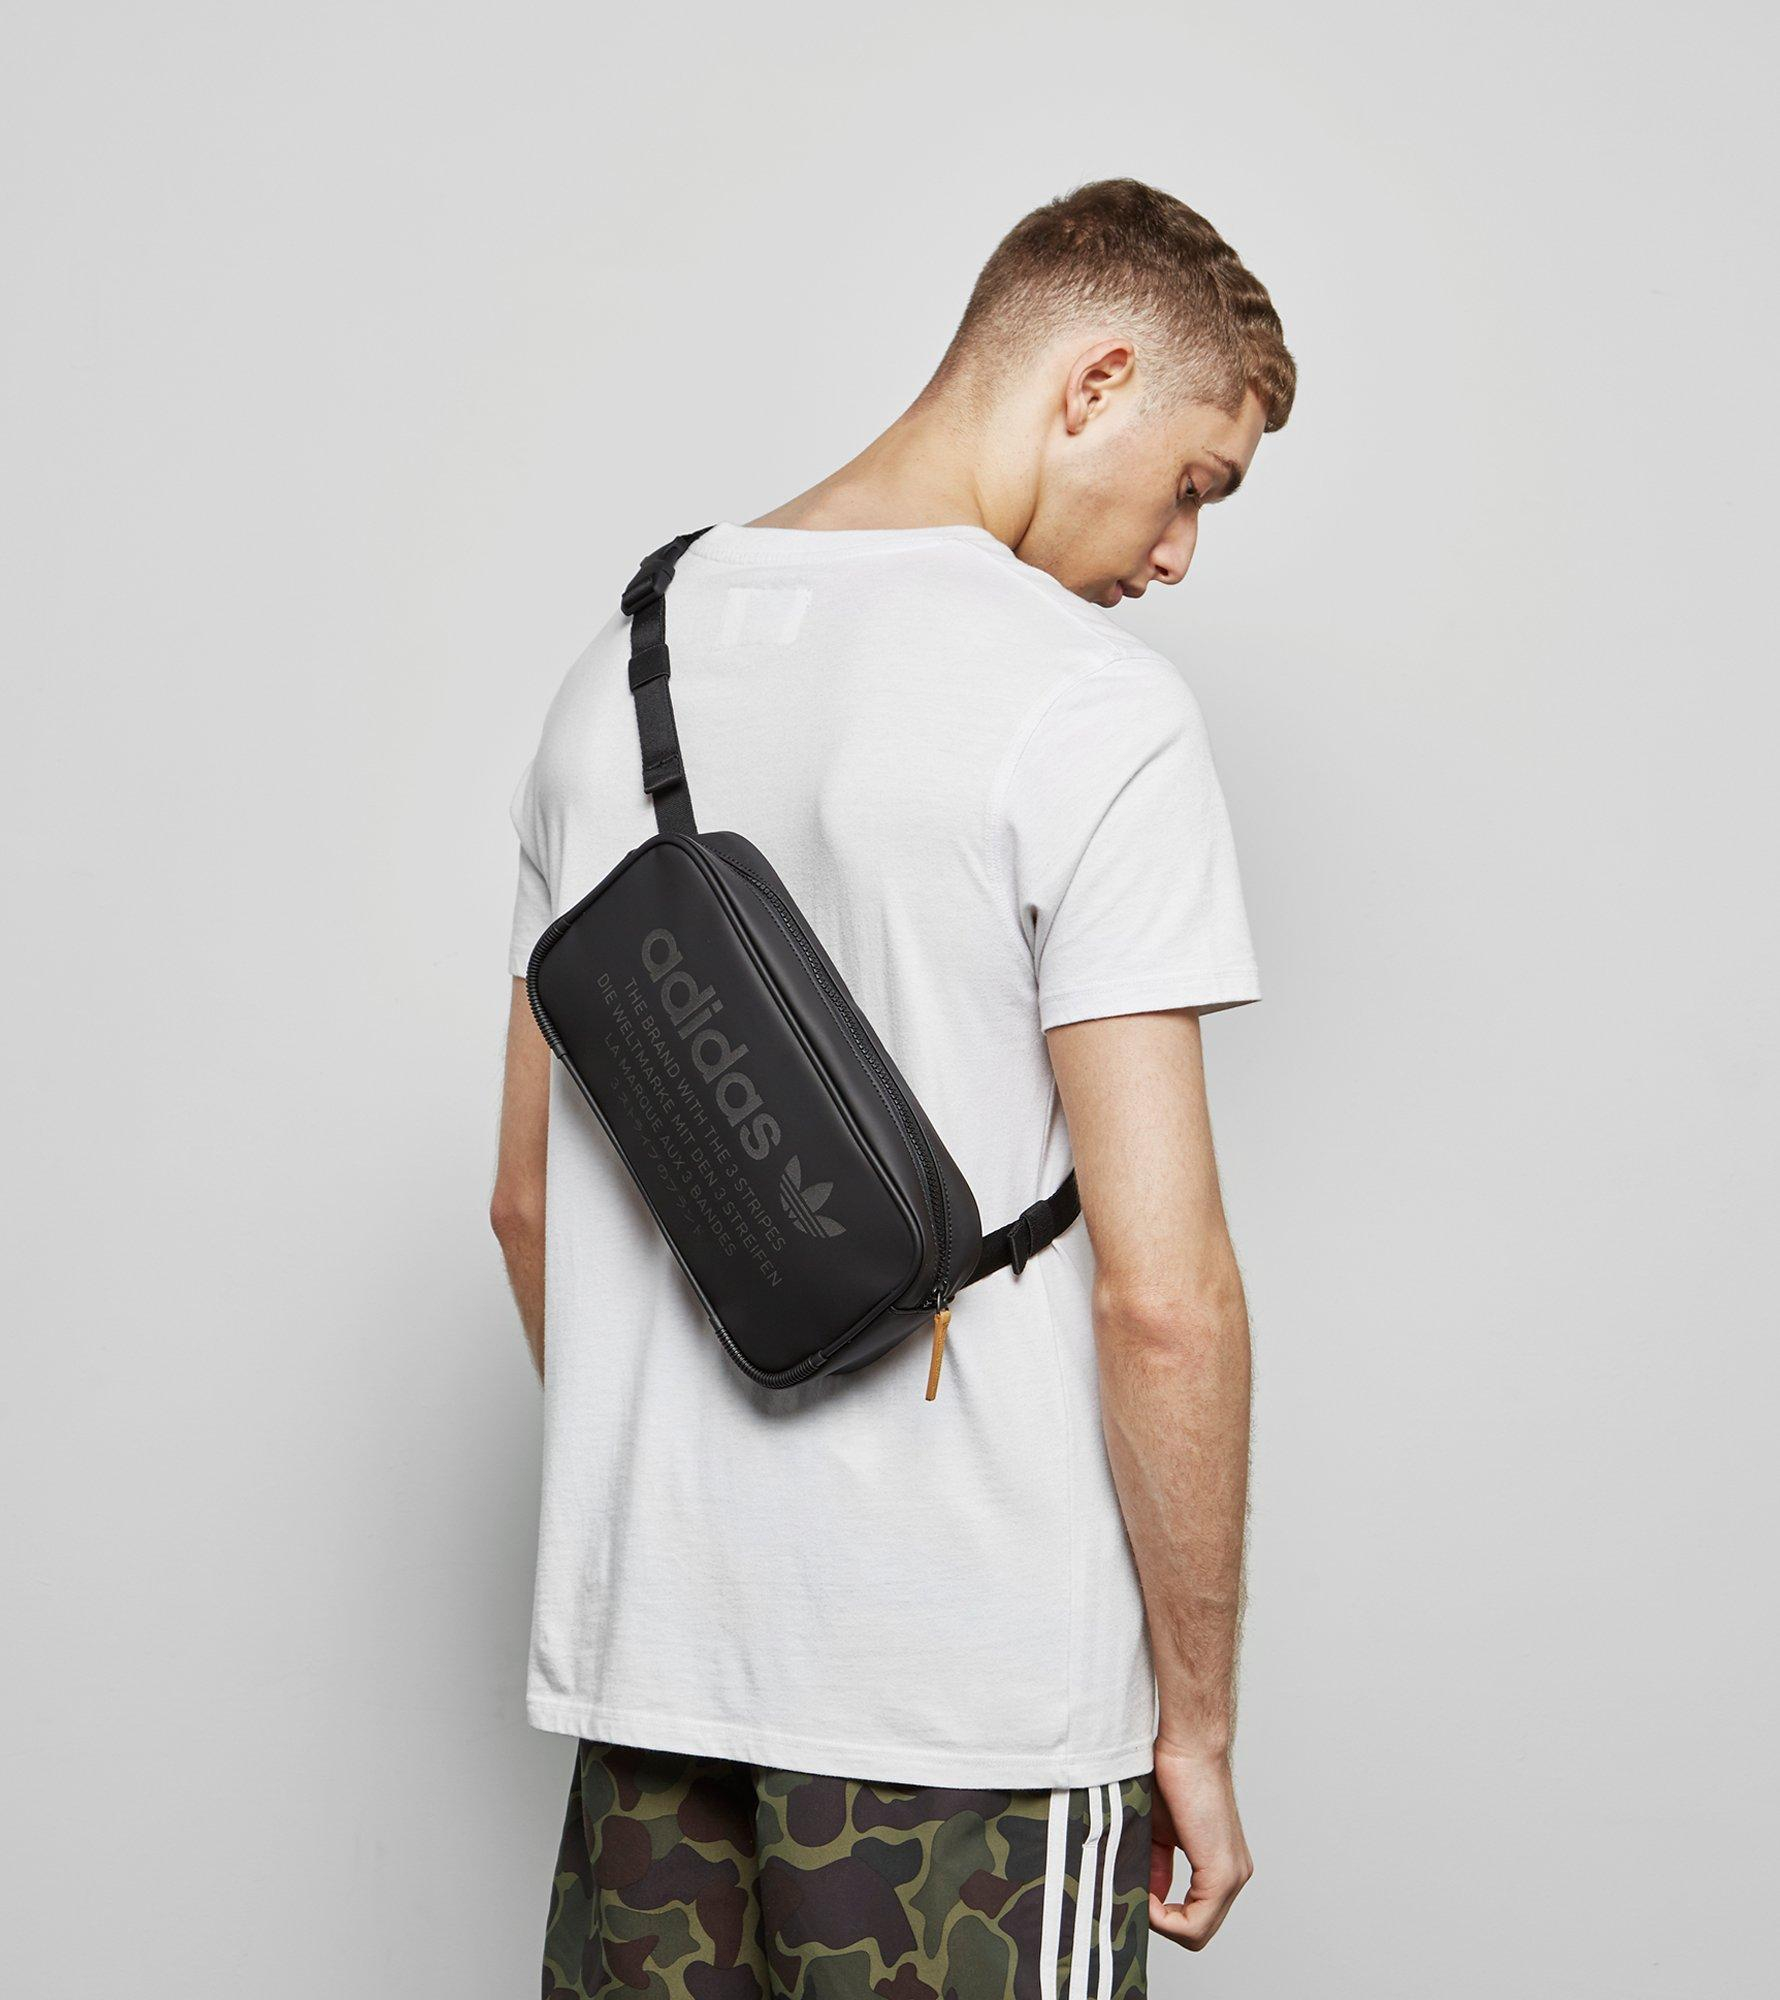 ... Messenger Bags  huge inventory f8c19 3c71d Adidas Originals Nmd Side Bag  in Black for Men - Lyst ... 6243237556